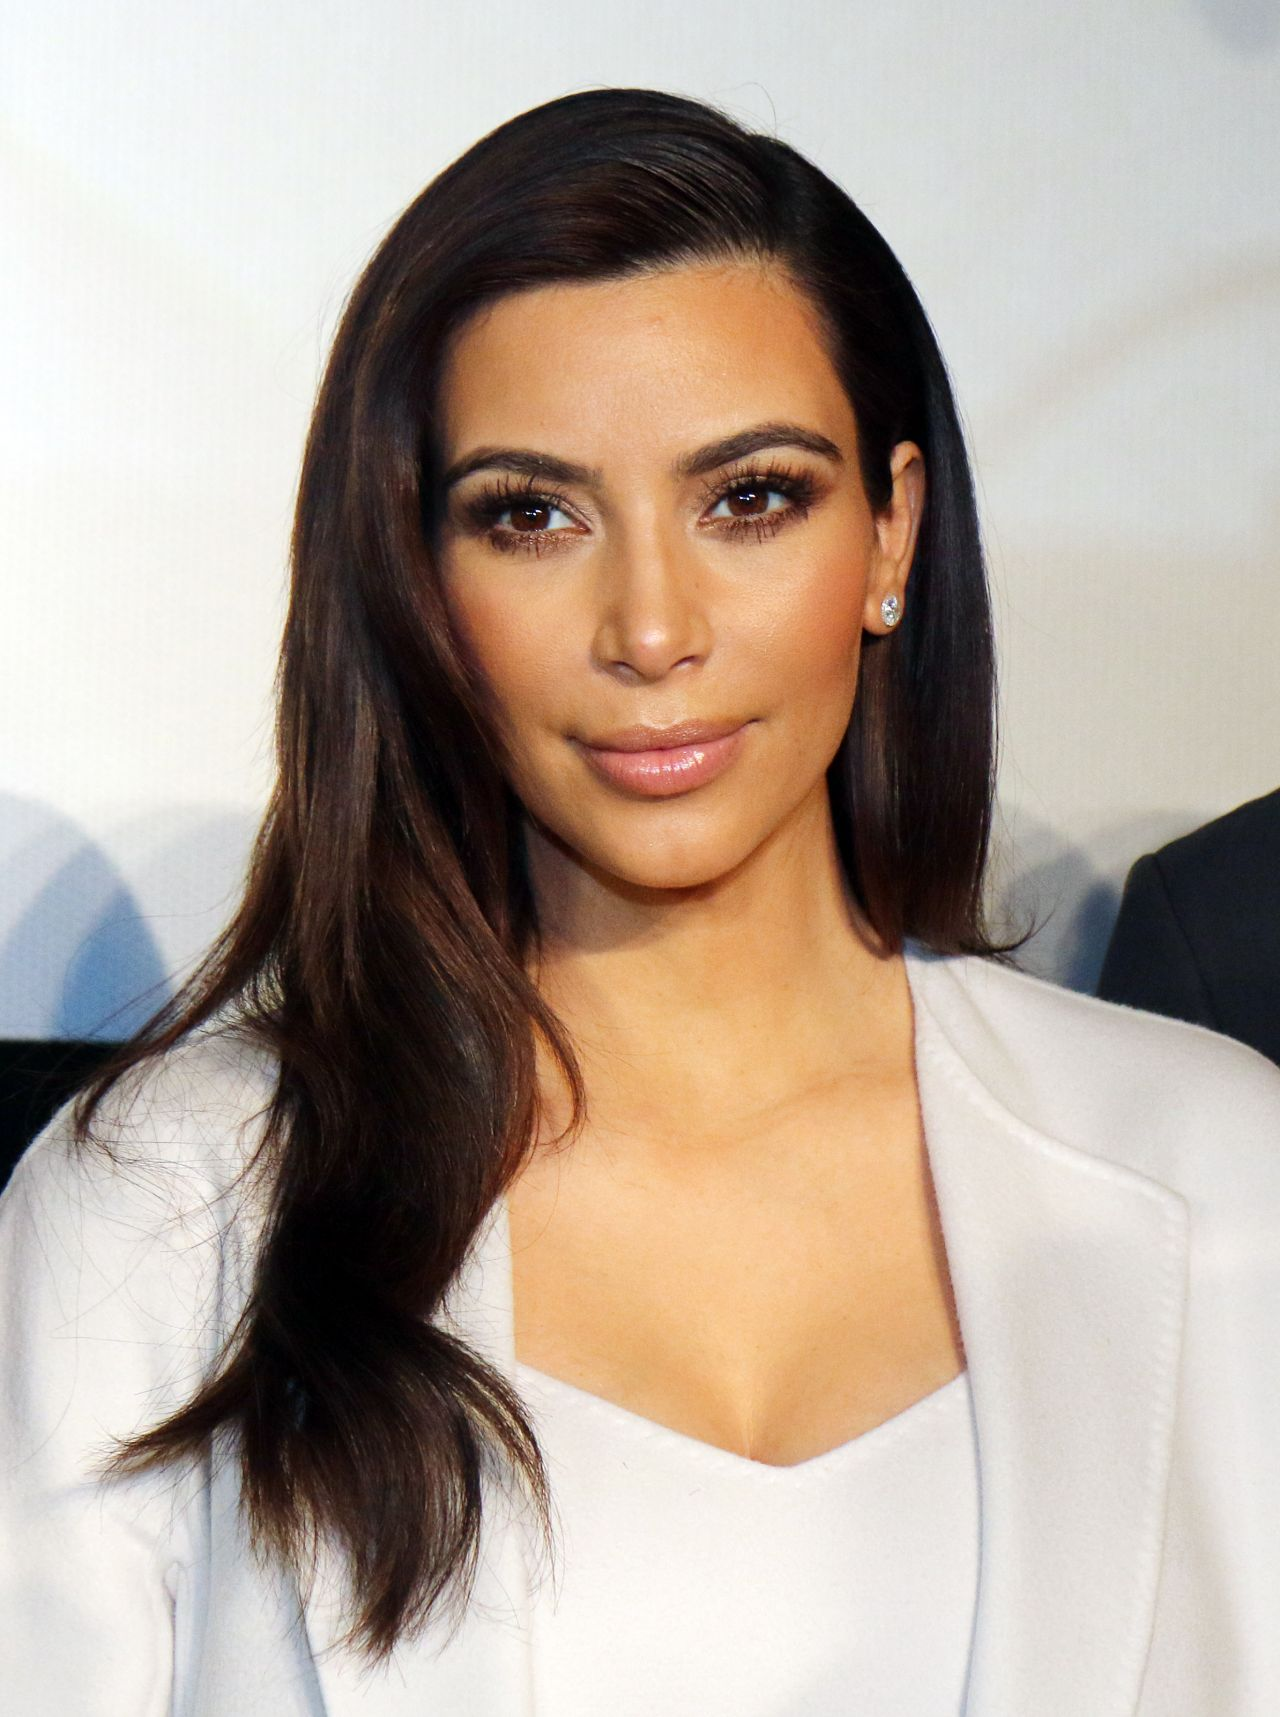 Kim Kardashian - News Conference in Vienna, Austria - February 2014